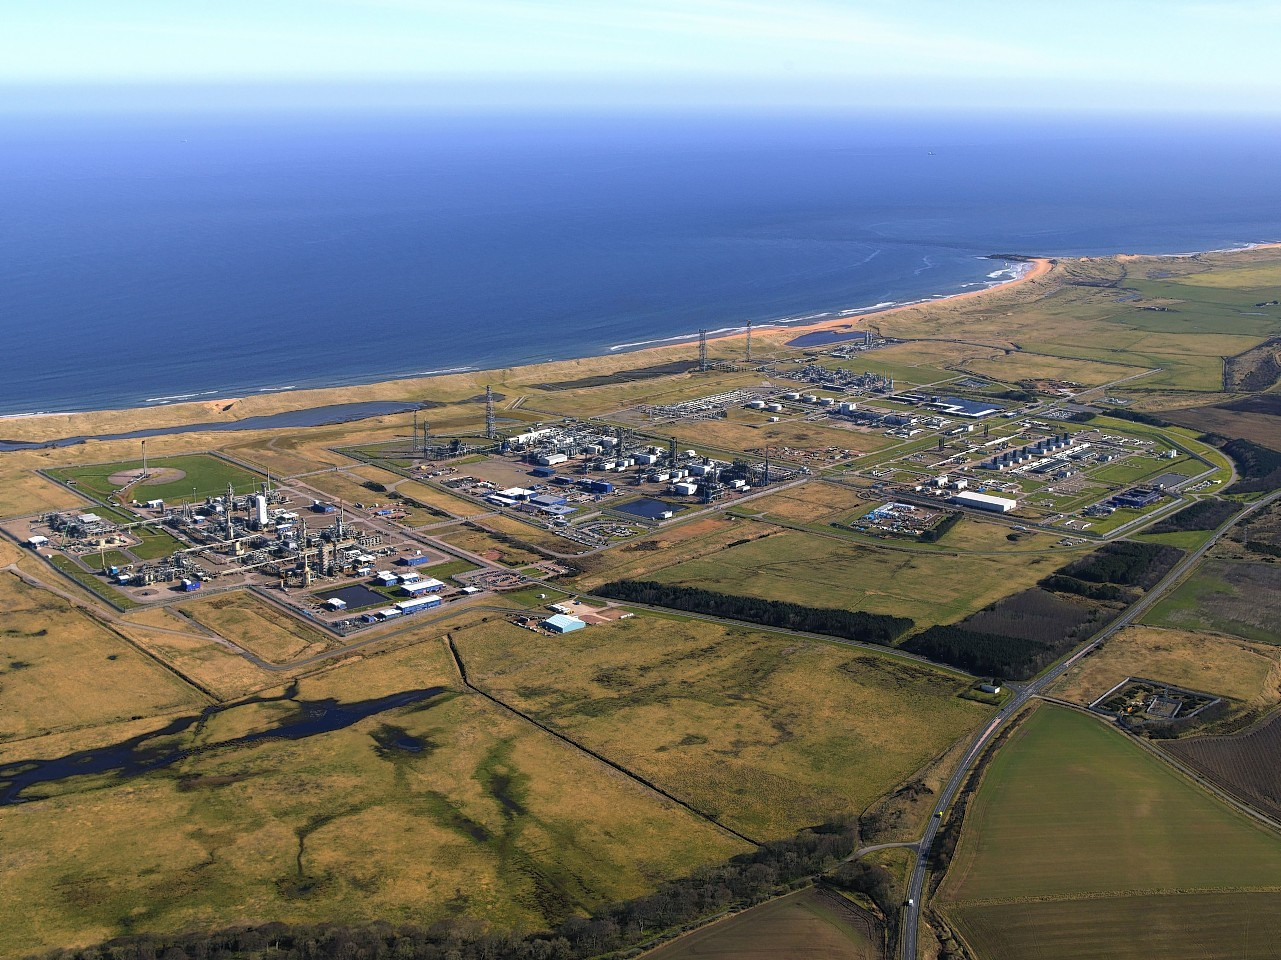 The St. Fergus Gas Terminal is a complex of four natural gas plants